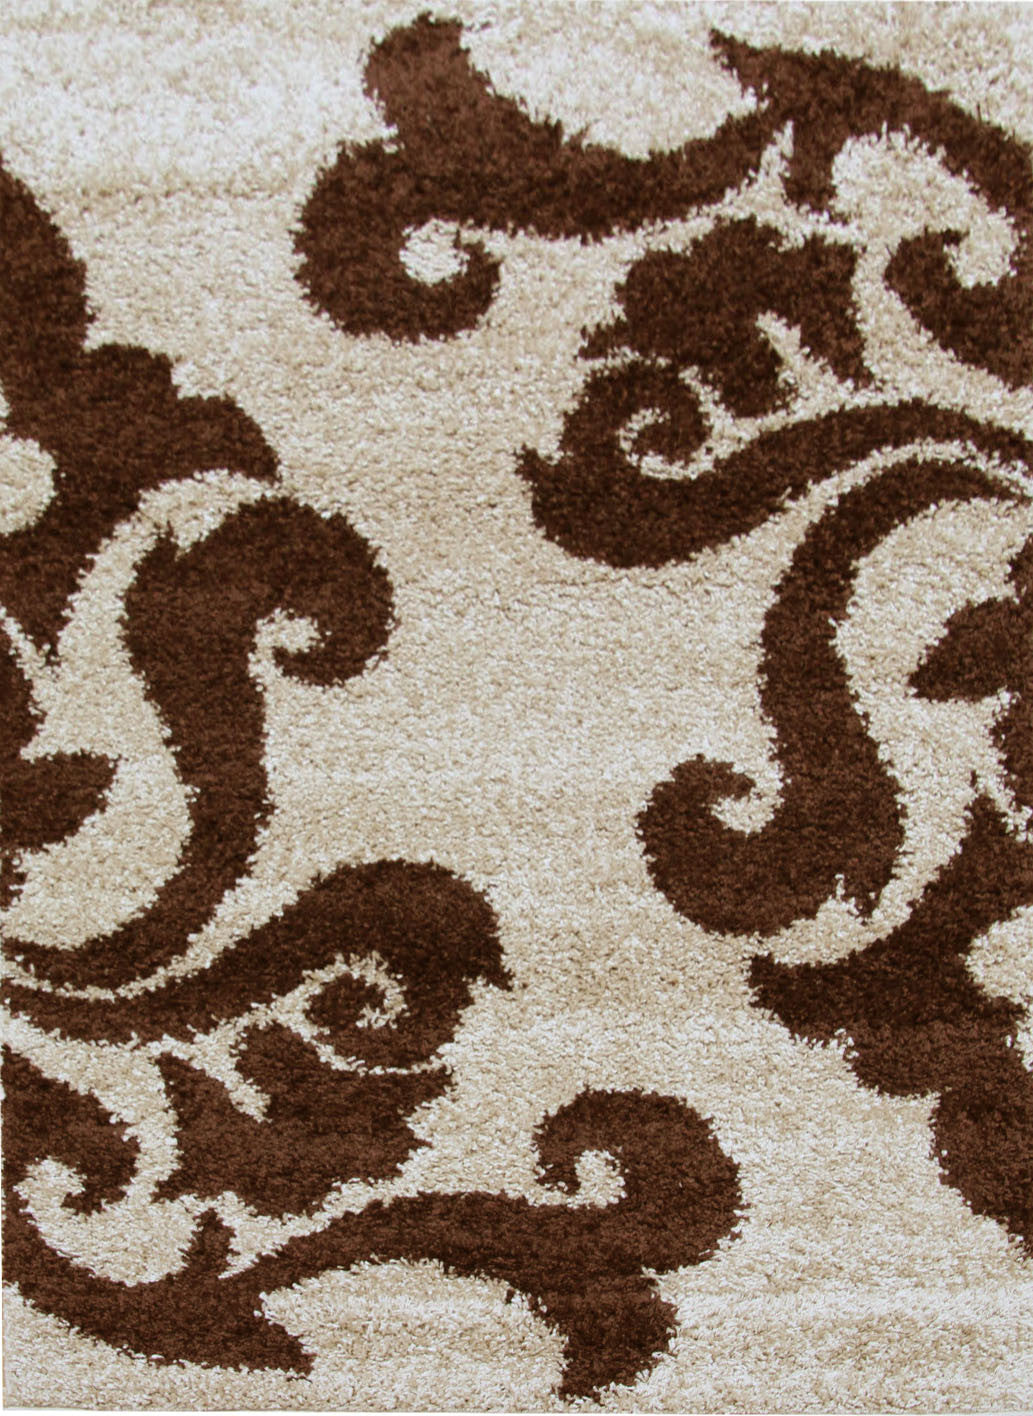 Notes 5 Shaggy Rug - Beige Brown